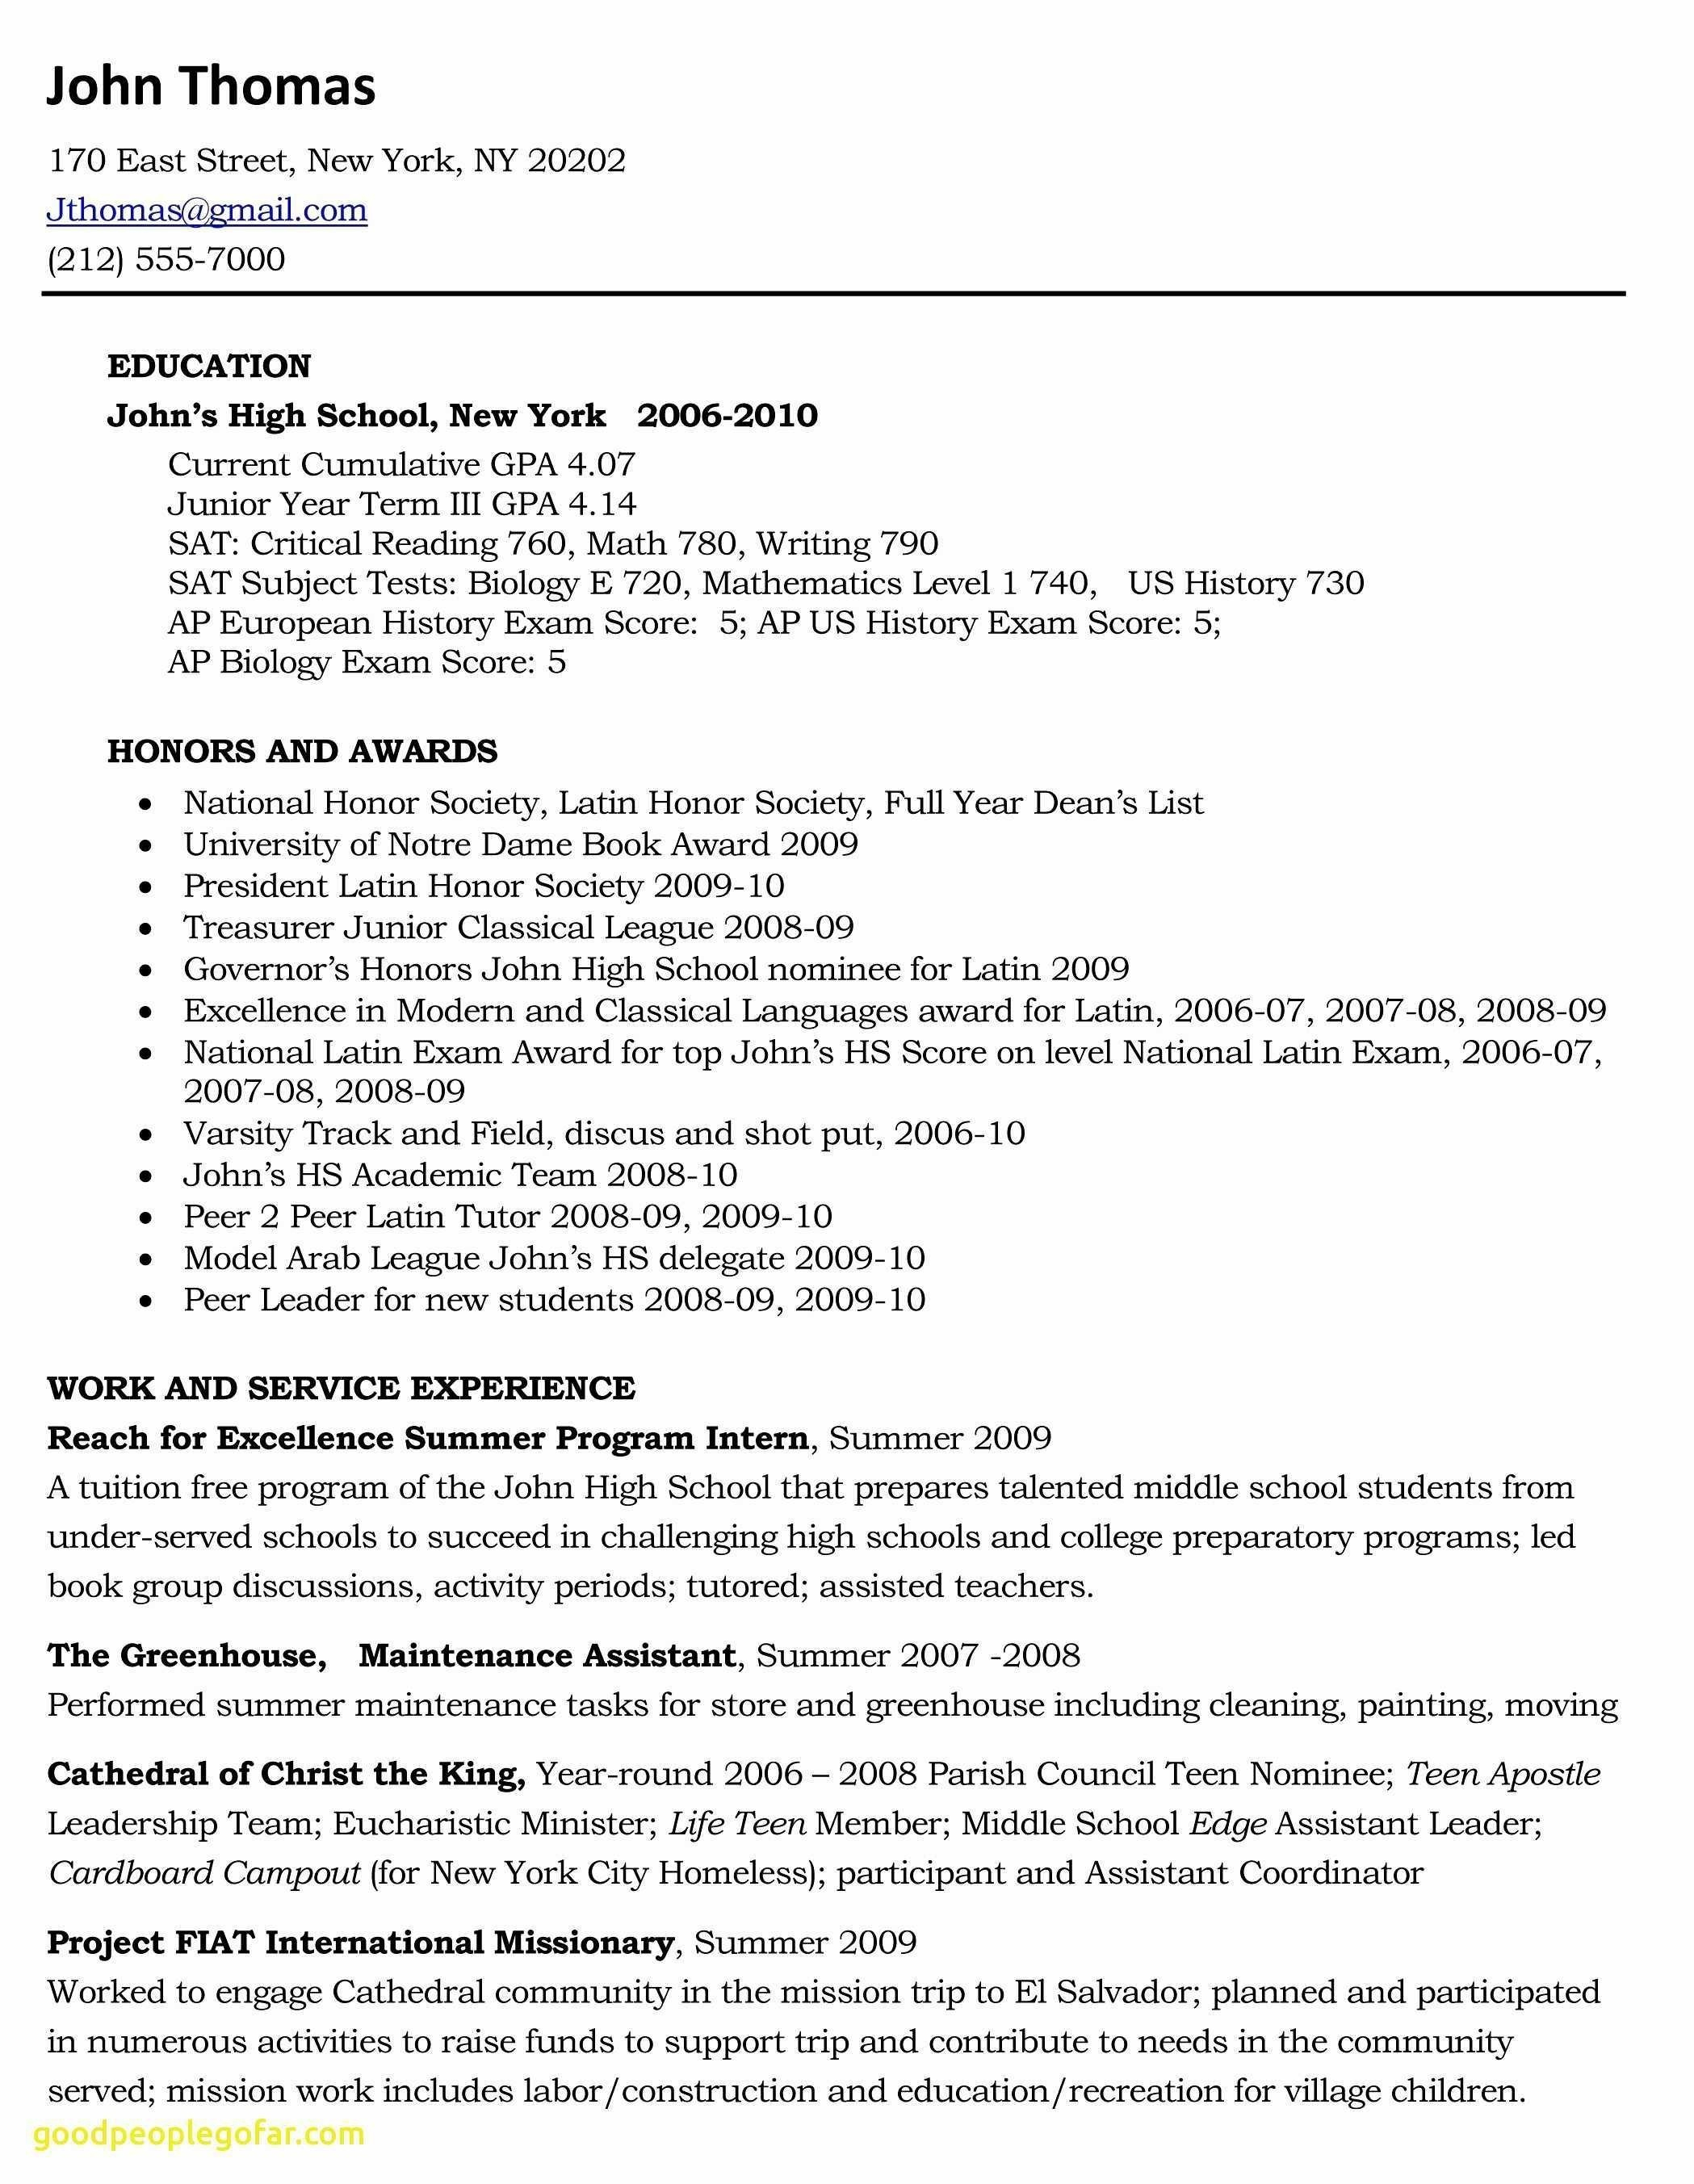 Best Way to Make A Resume - How to Make A Good Resume Fresh Make Free Resume Best Fresh Entry